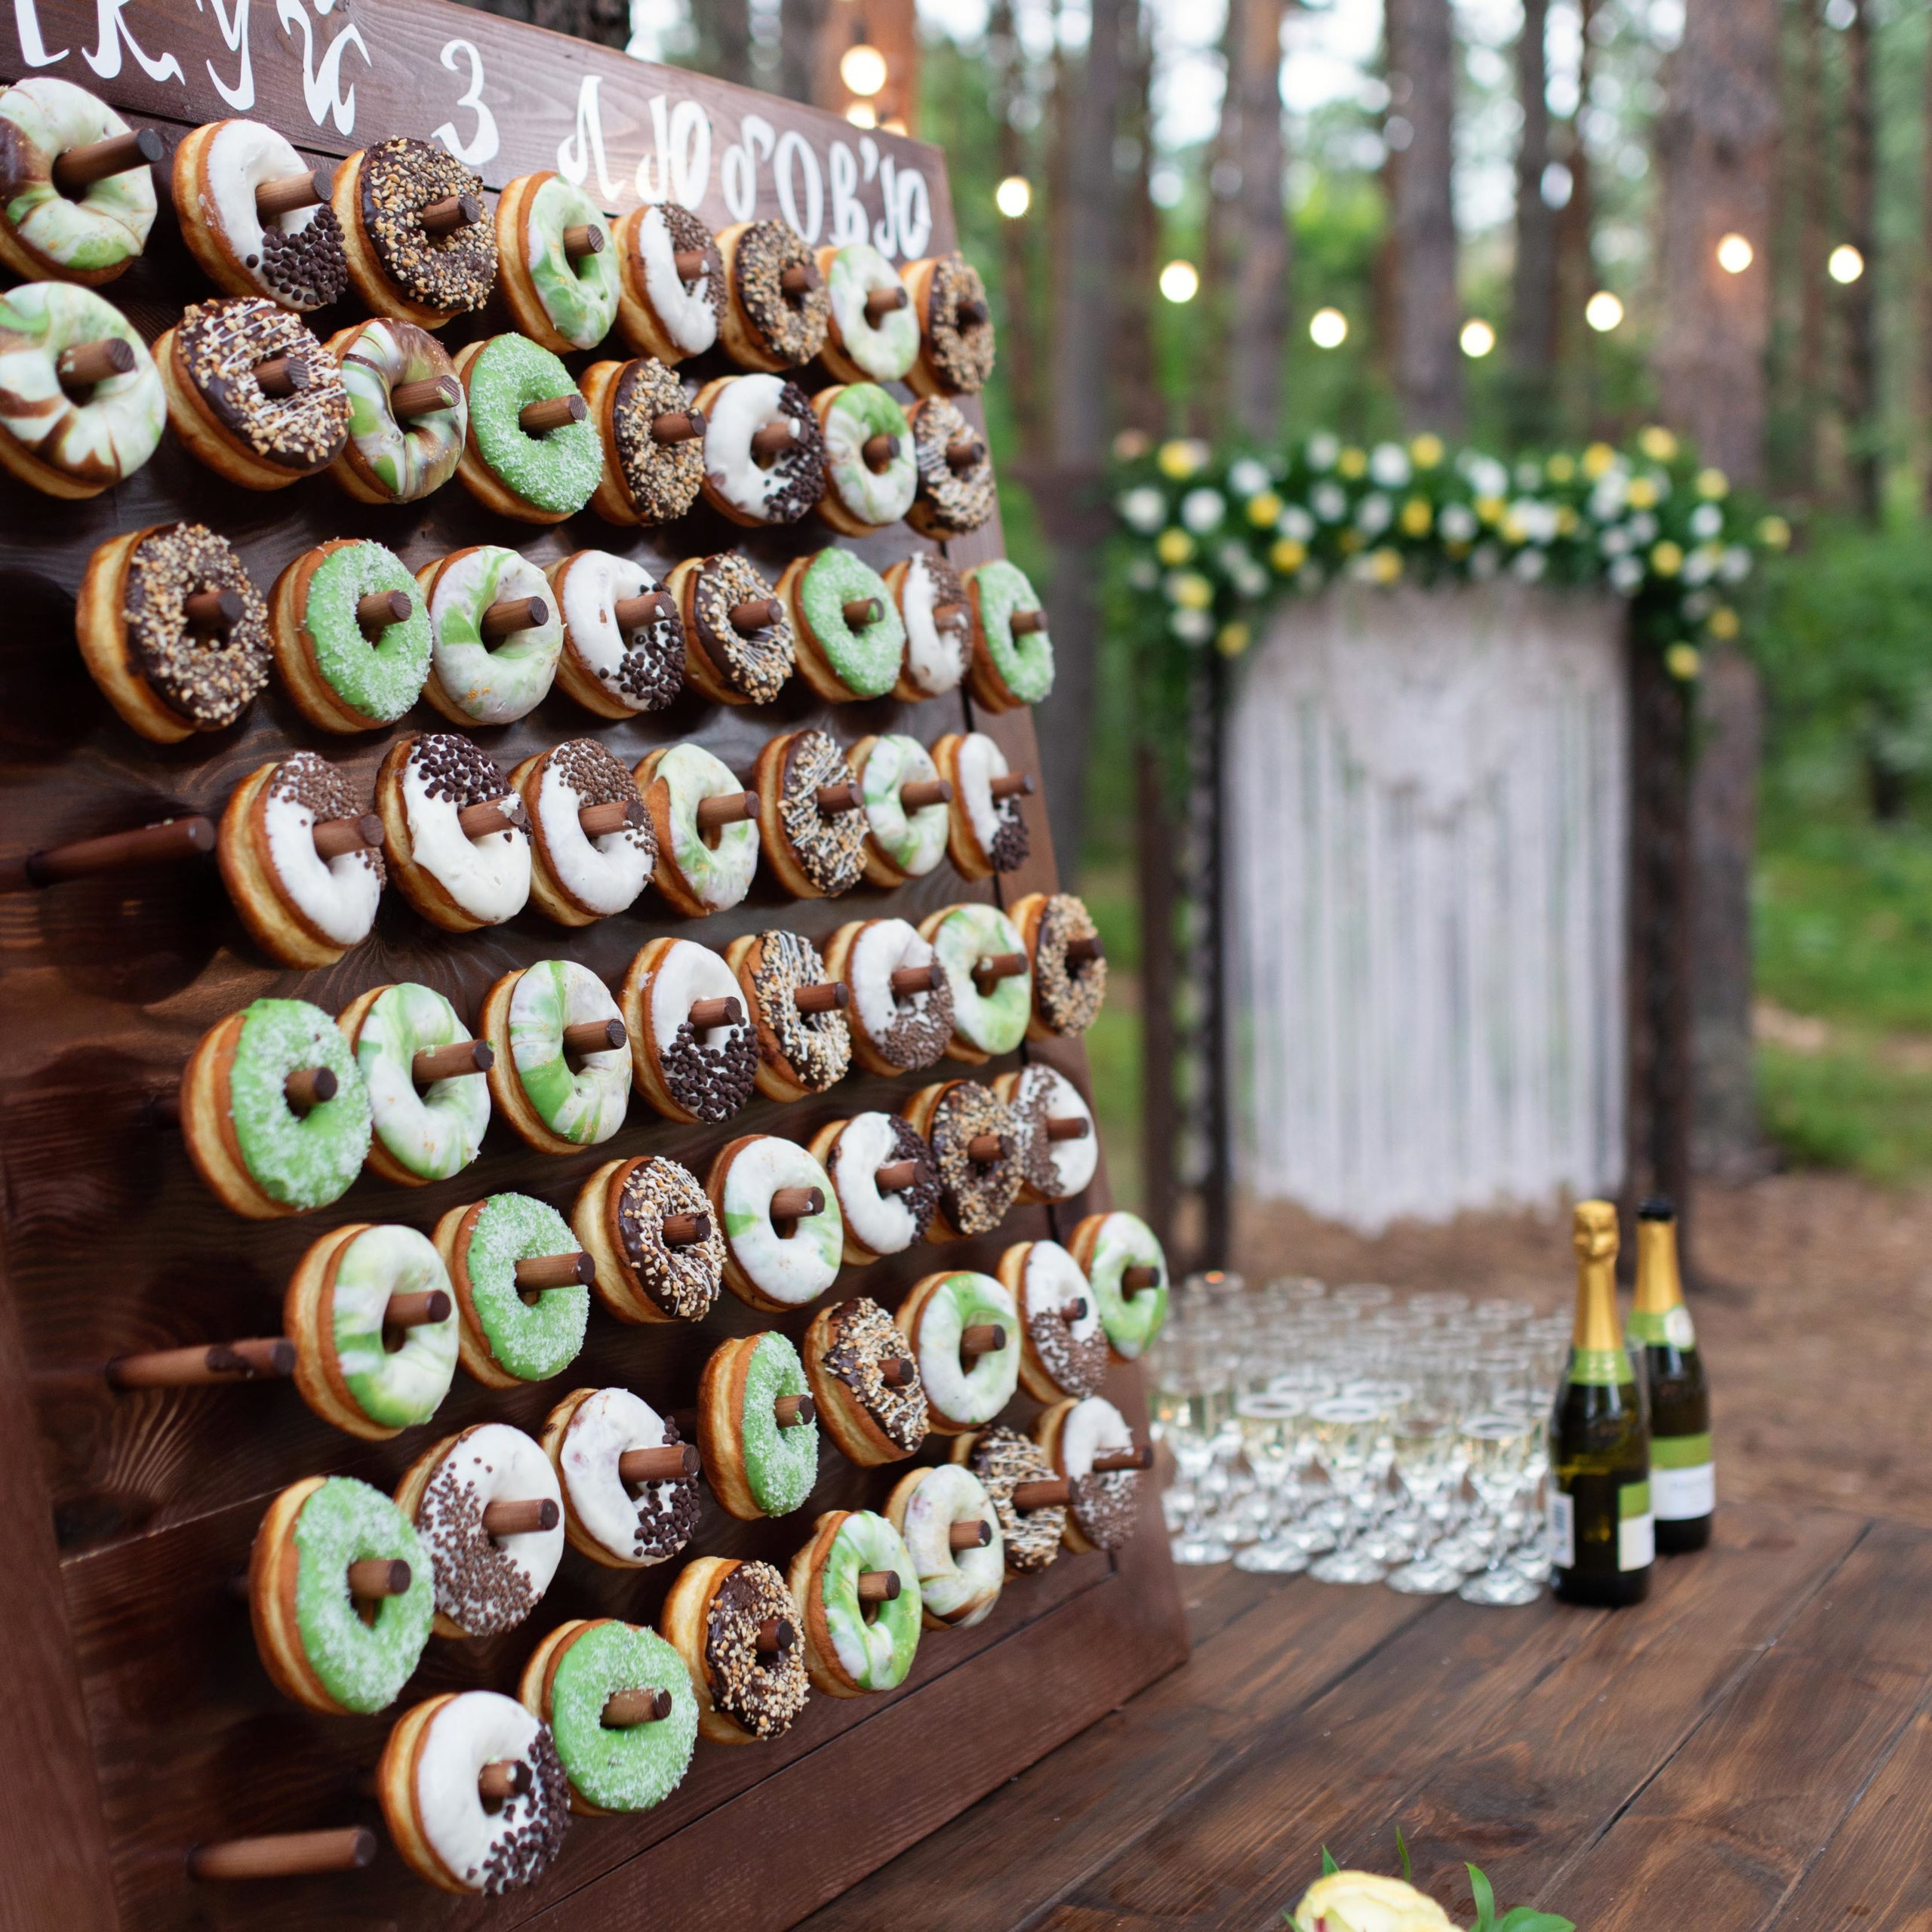 topping donut or ice cream bar